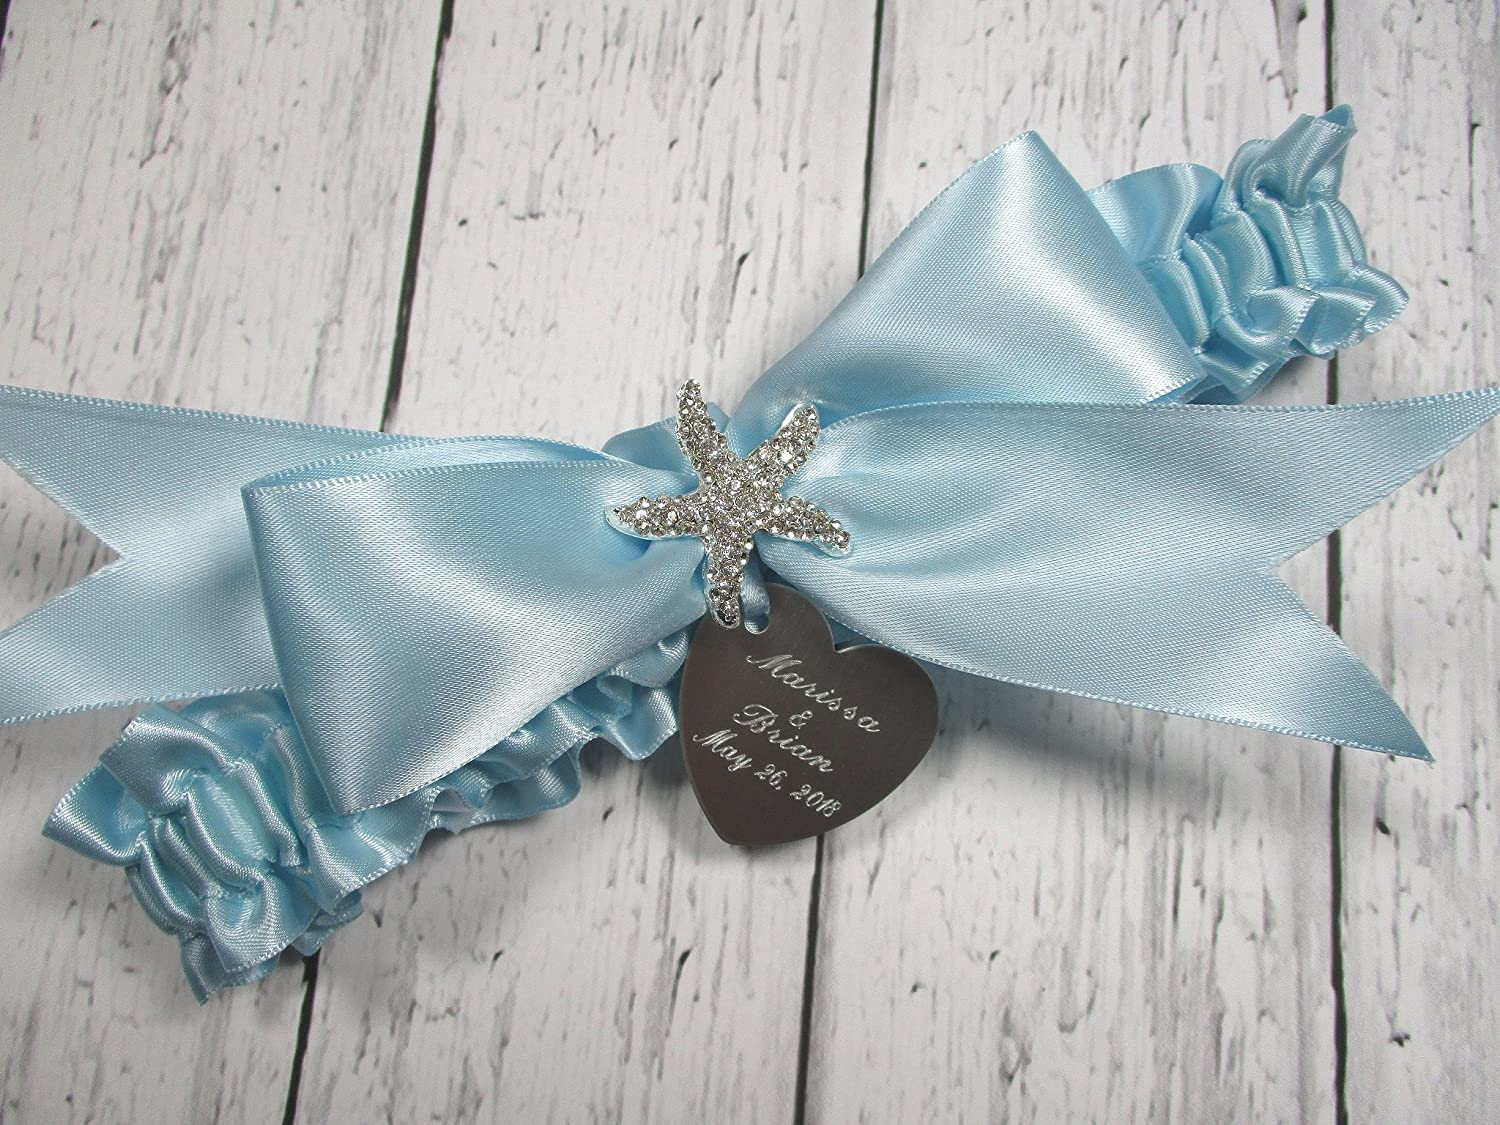 Blue Wedding Garter with a Rhinestone Heart and Personalized Engraving